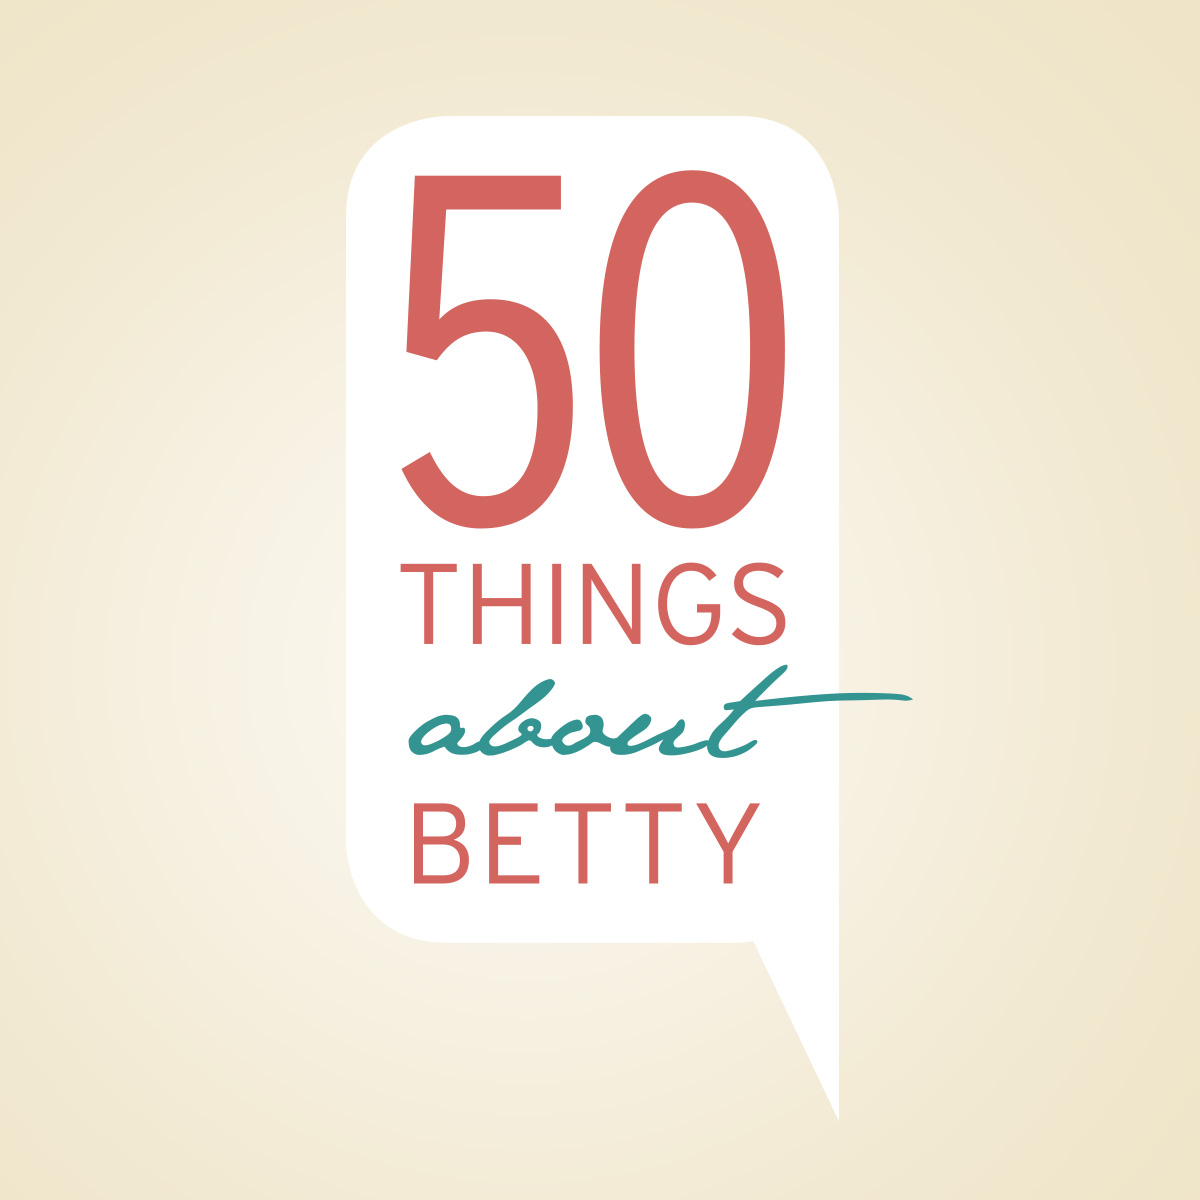 50 things about